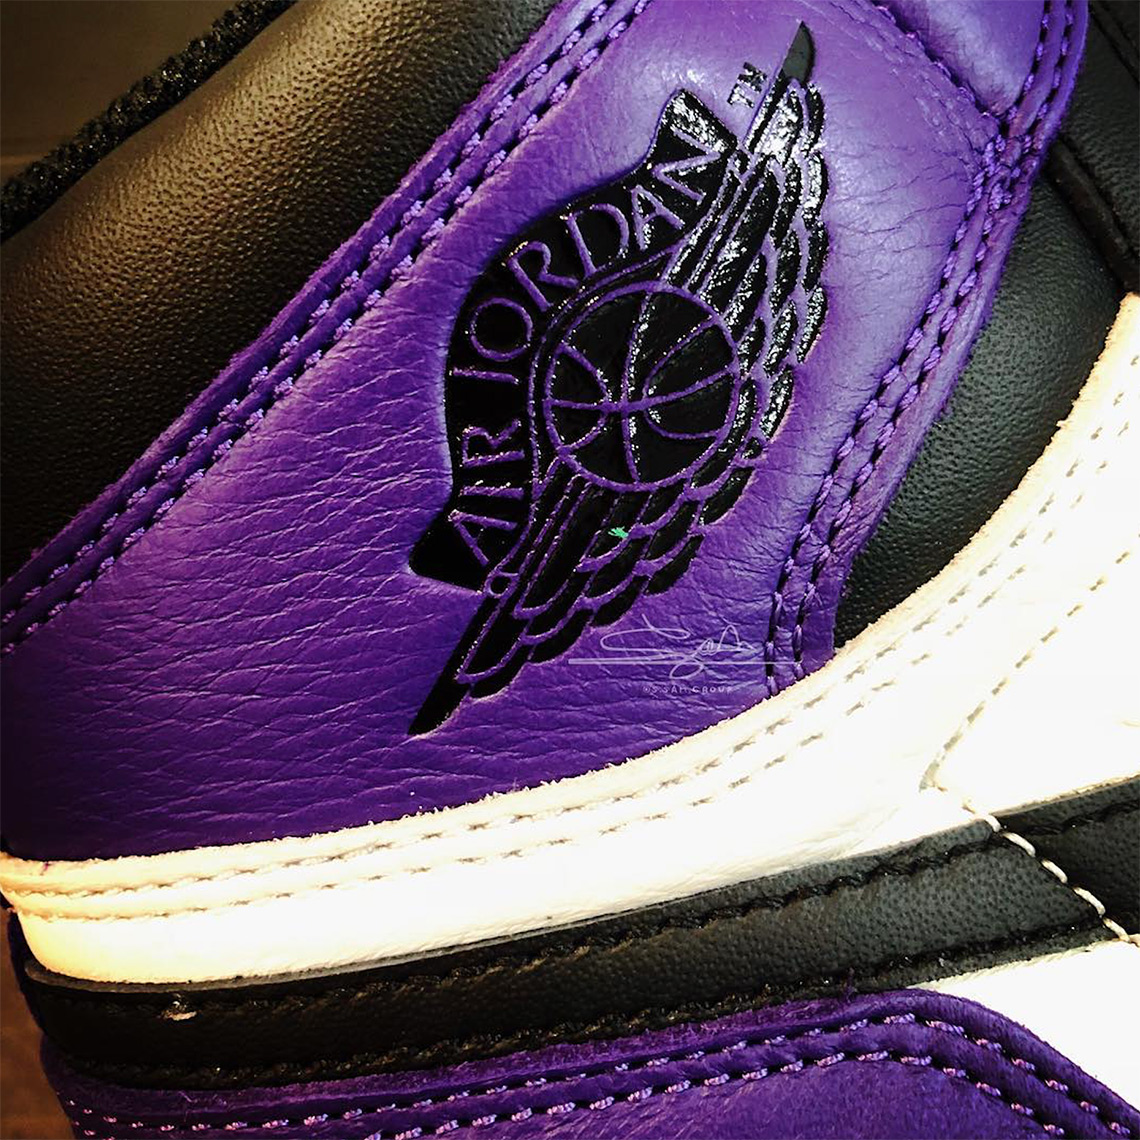 Air Jordan 1 Retro High OG Court Purple Release 555088 501 Info